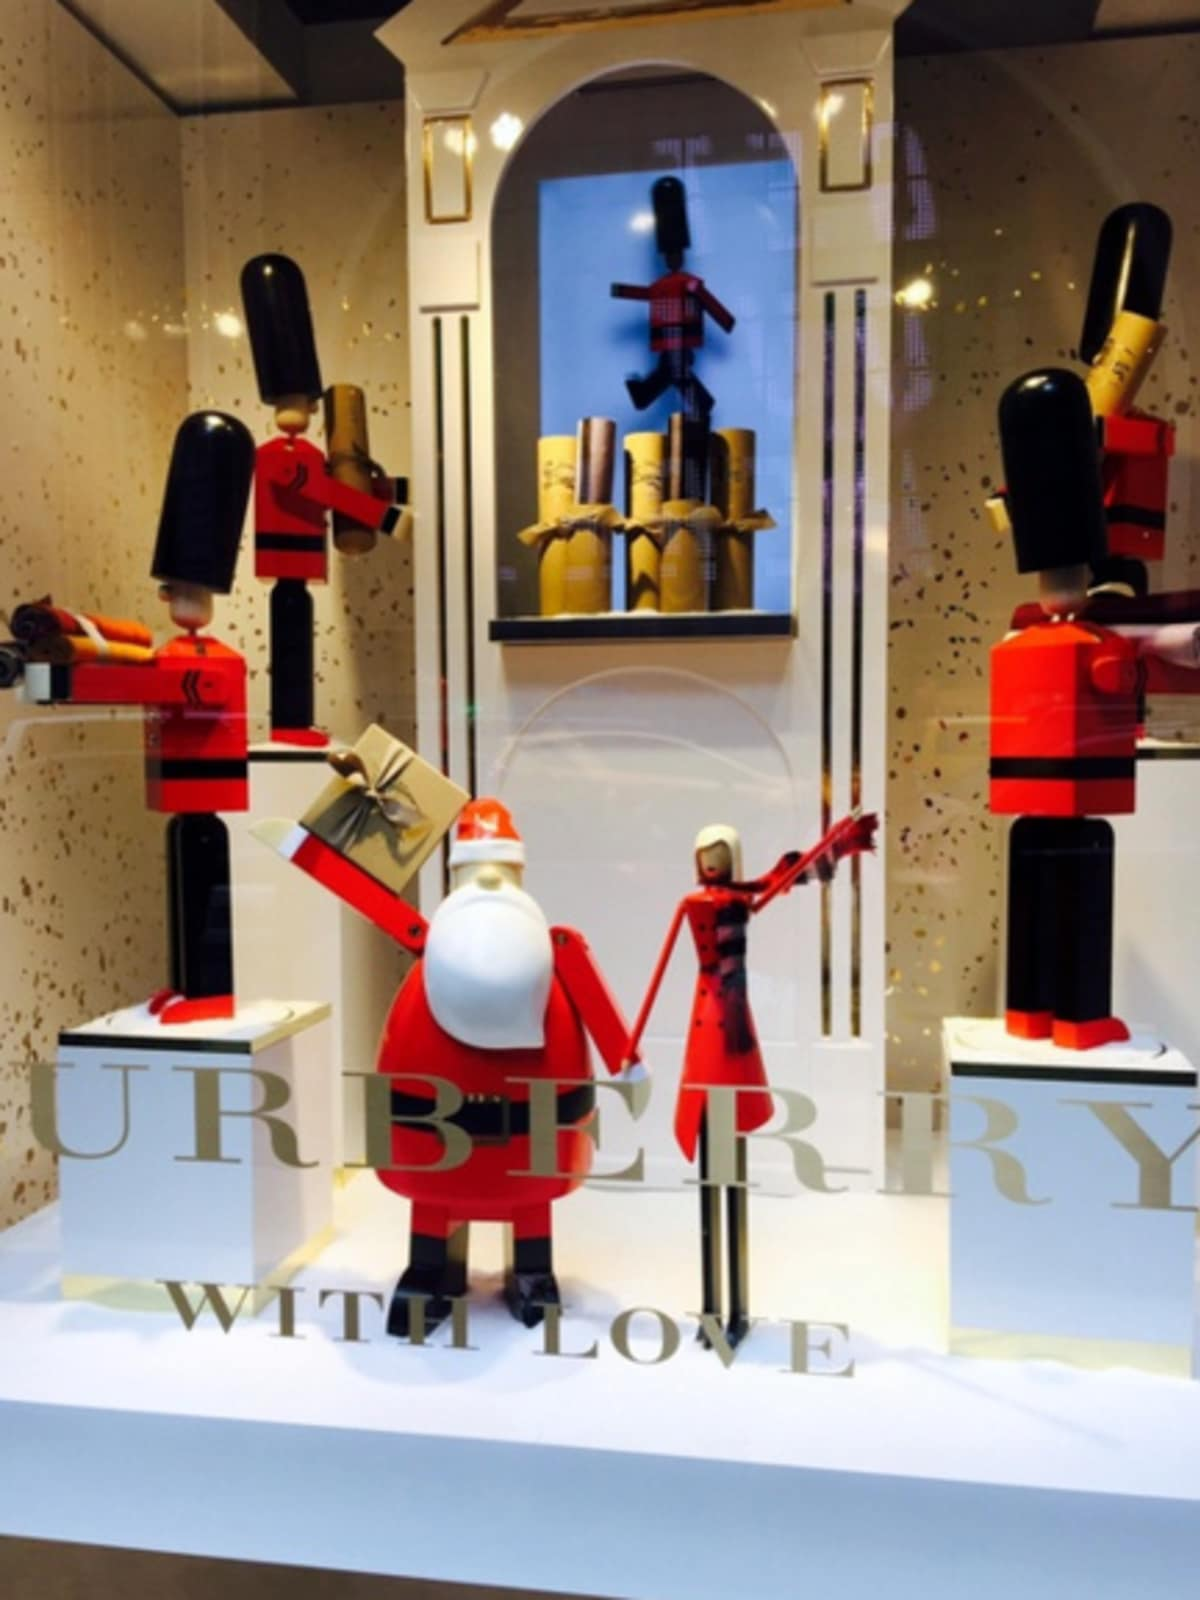 News, NYC Christmas decor, Dec. 2015